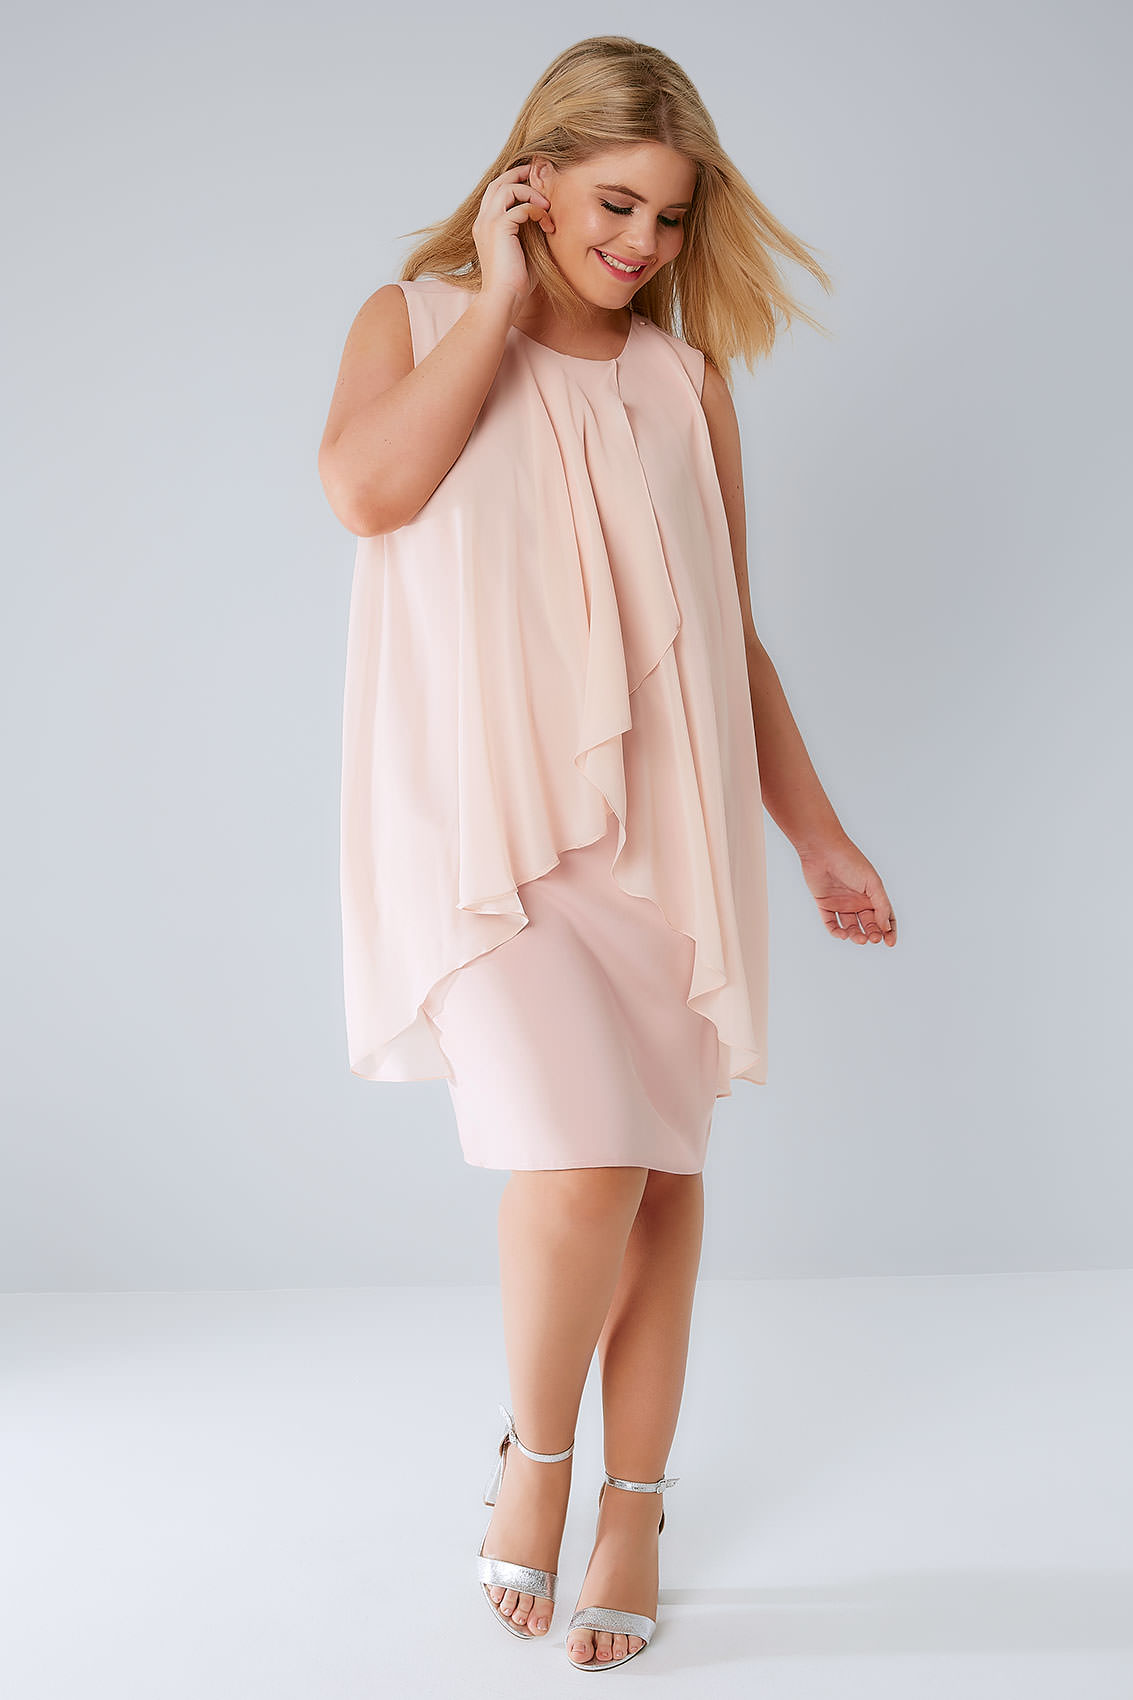 Blush Pink Layered Front Dress With Detachable Diamante ...